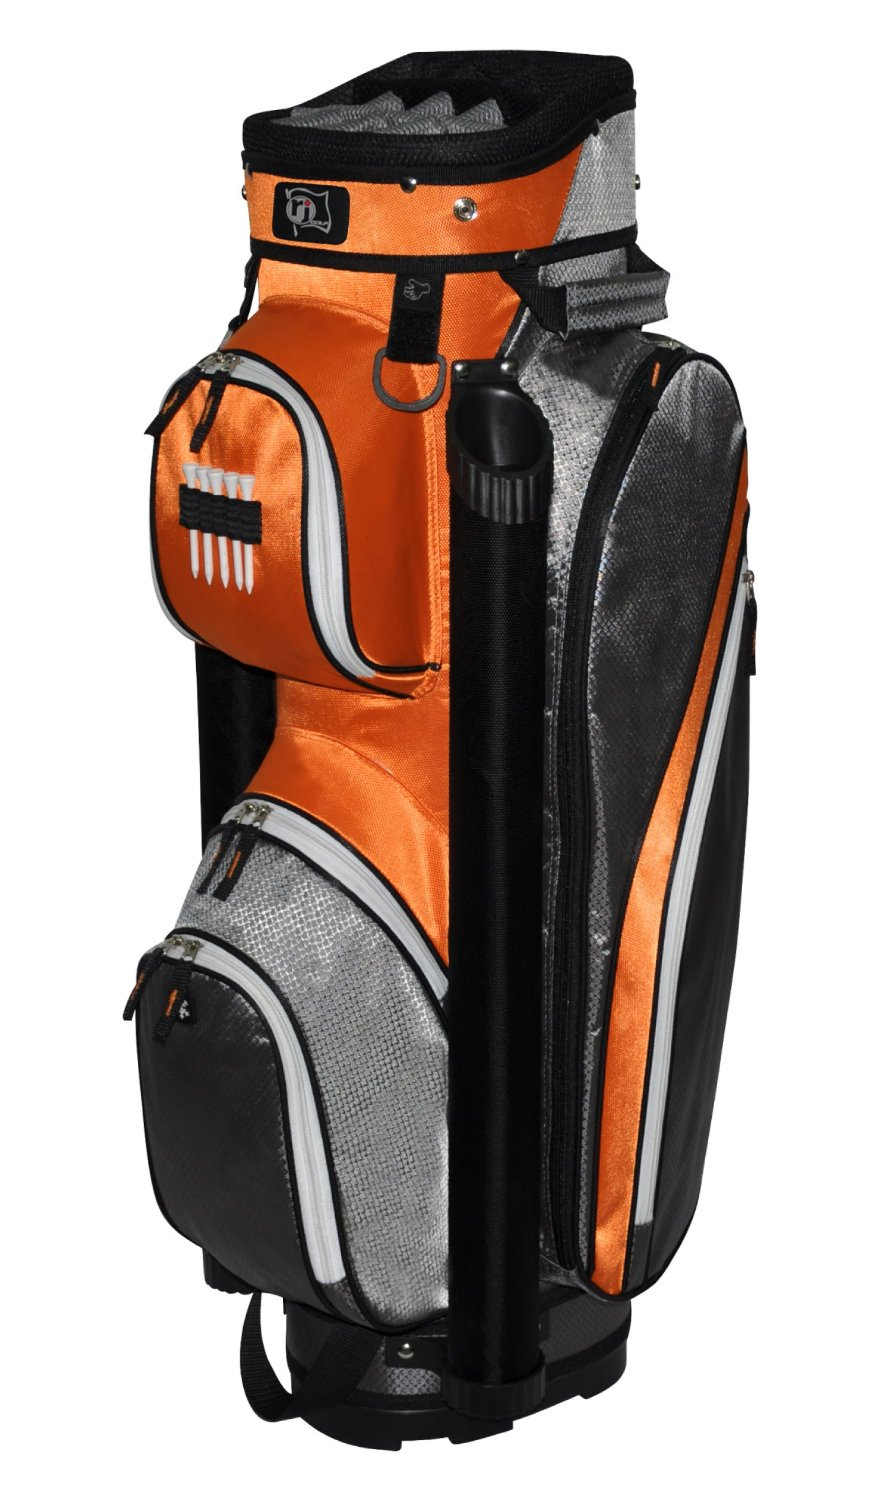 RJ Sports Mens Golf Bags